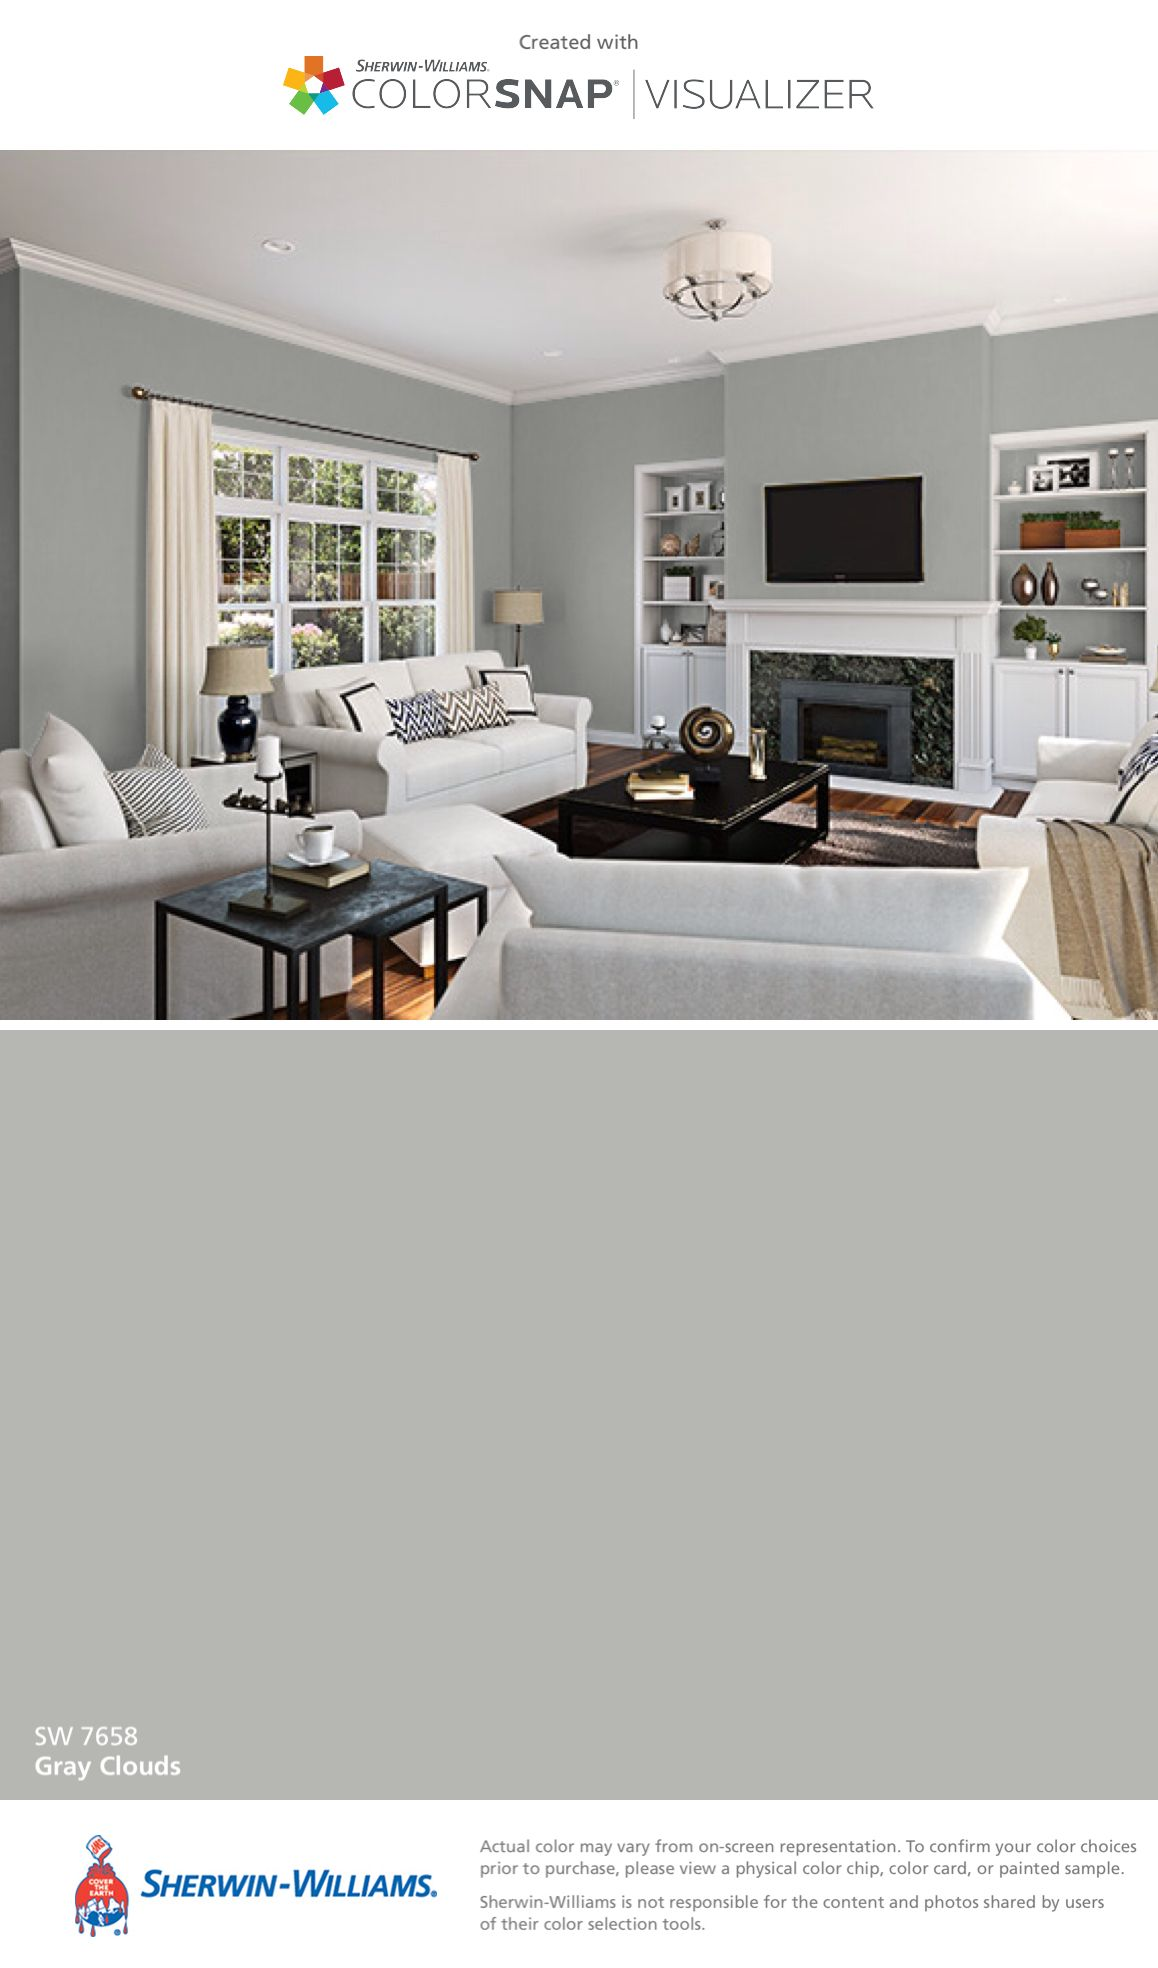 I Found This Color With Colorsnap Visualizer For Iphone By Sherwin Williams Gray Clouds Sw 7658